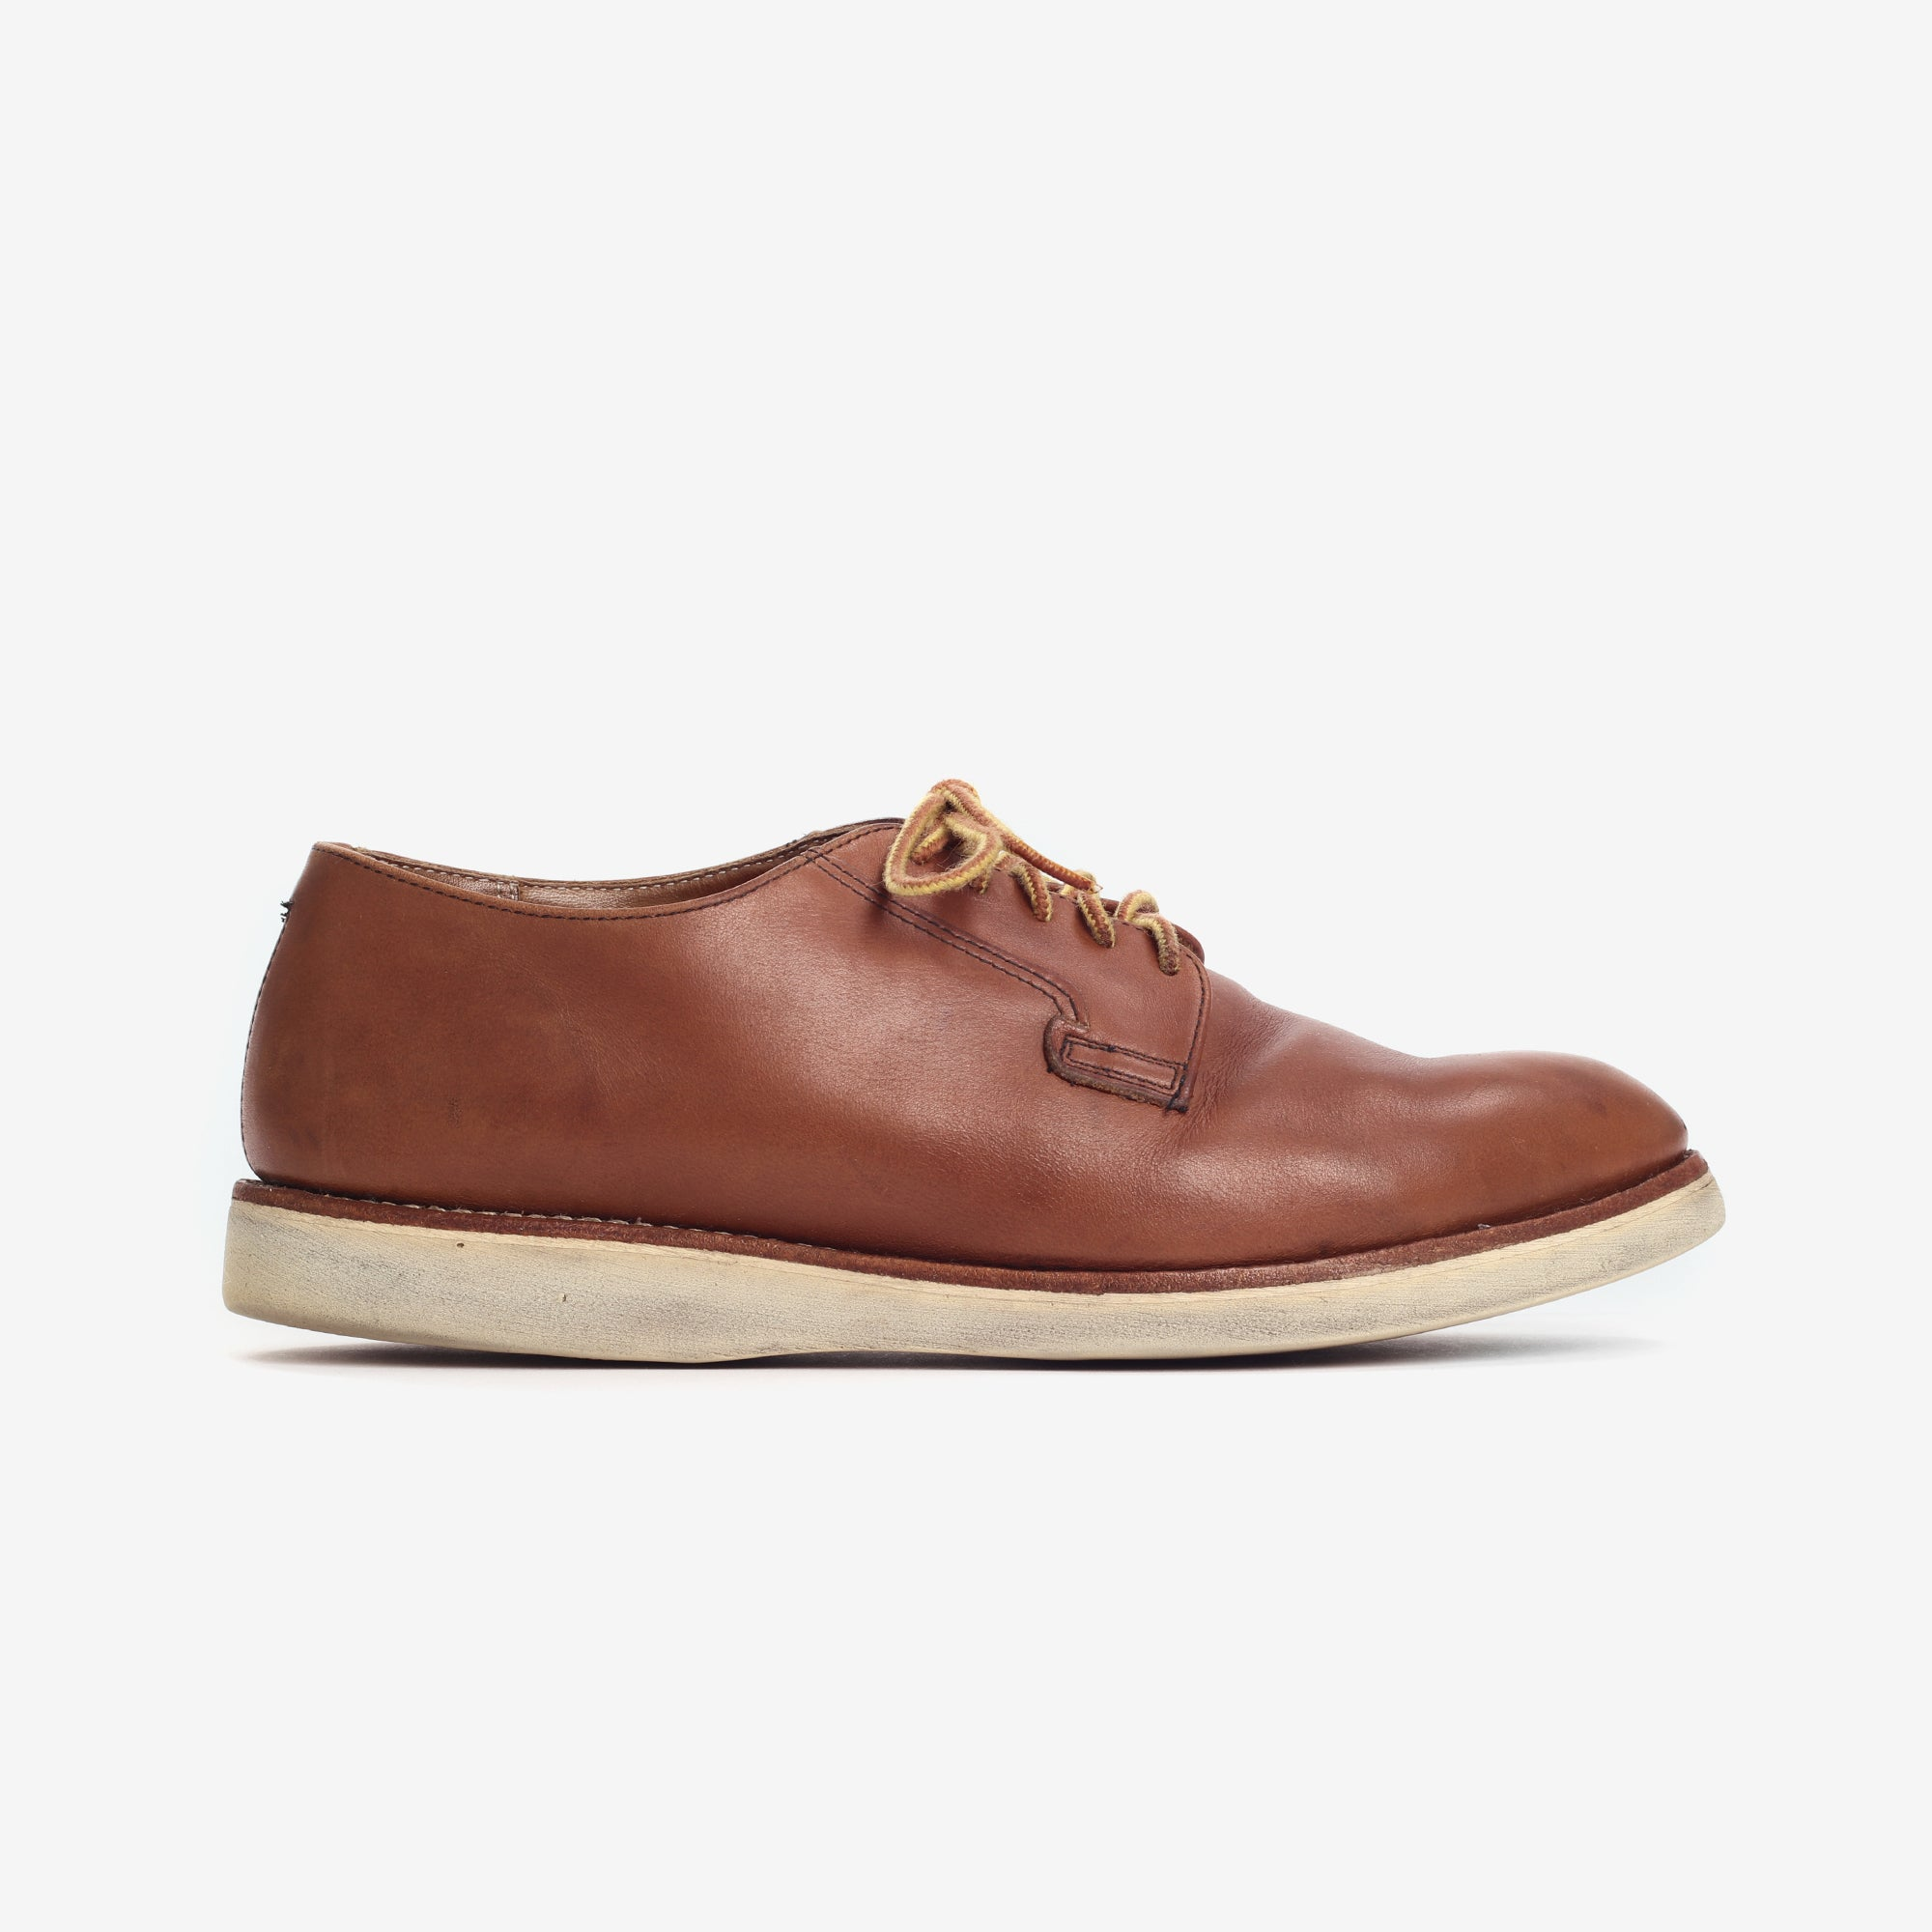 03102 Oxford Shoes